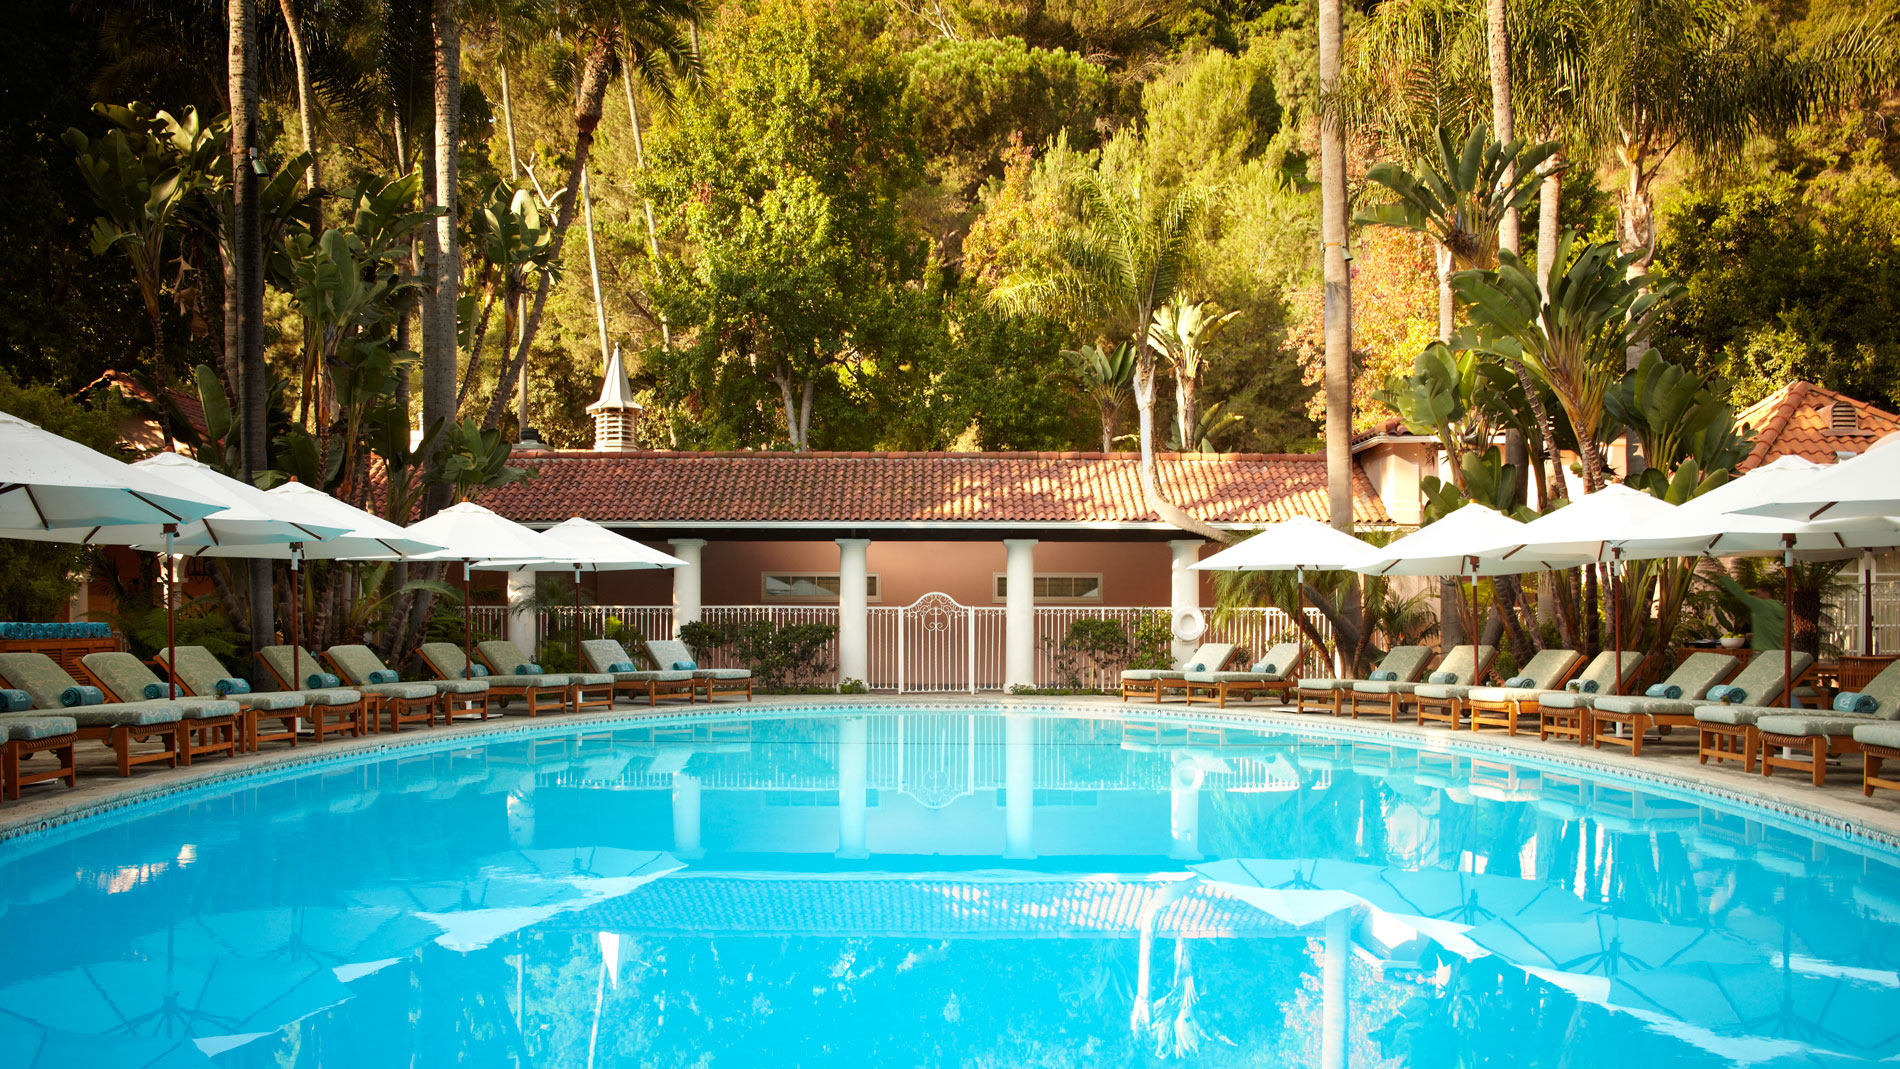 Hotel Bel-Air Los Angeles